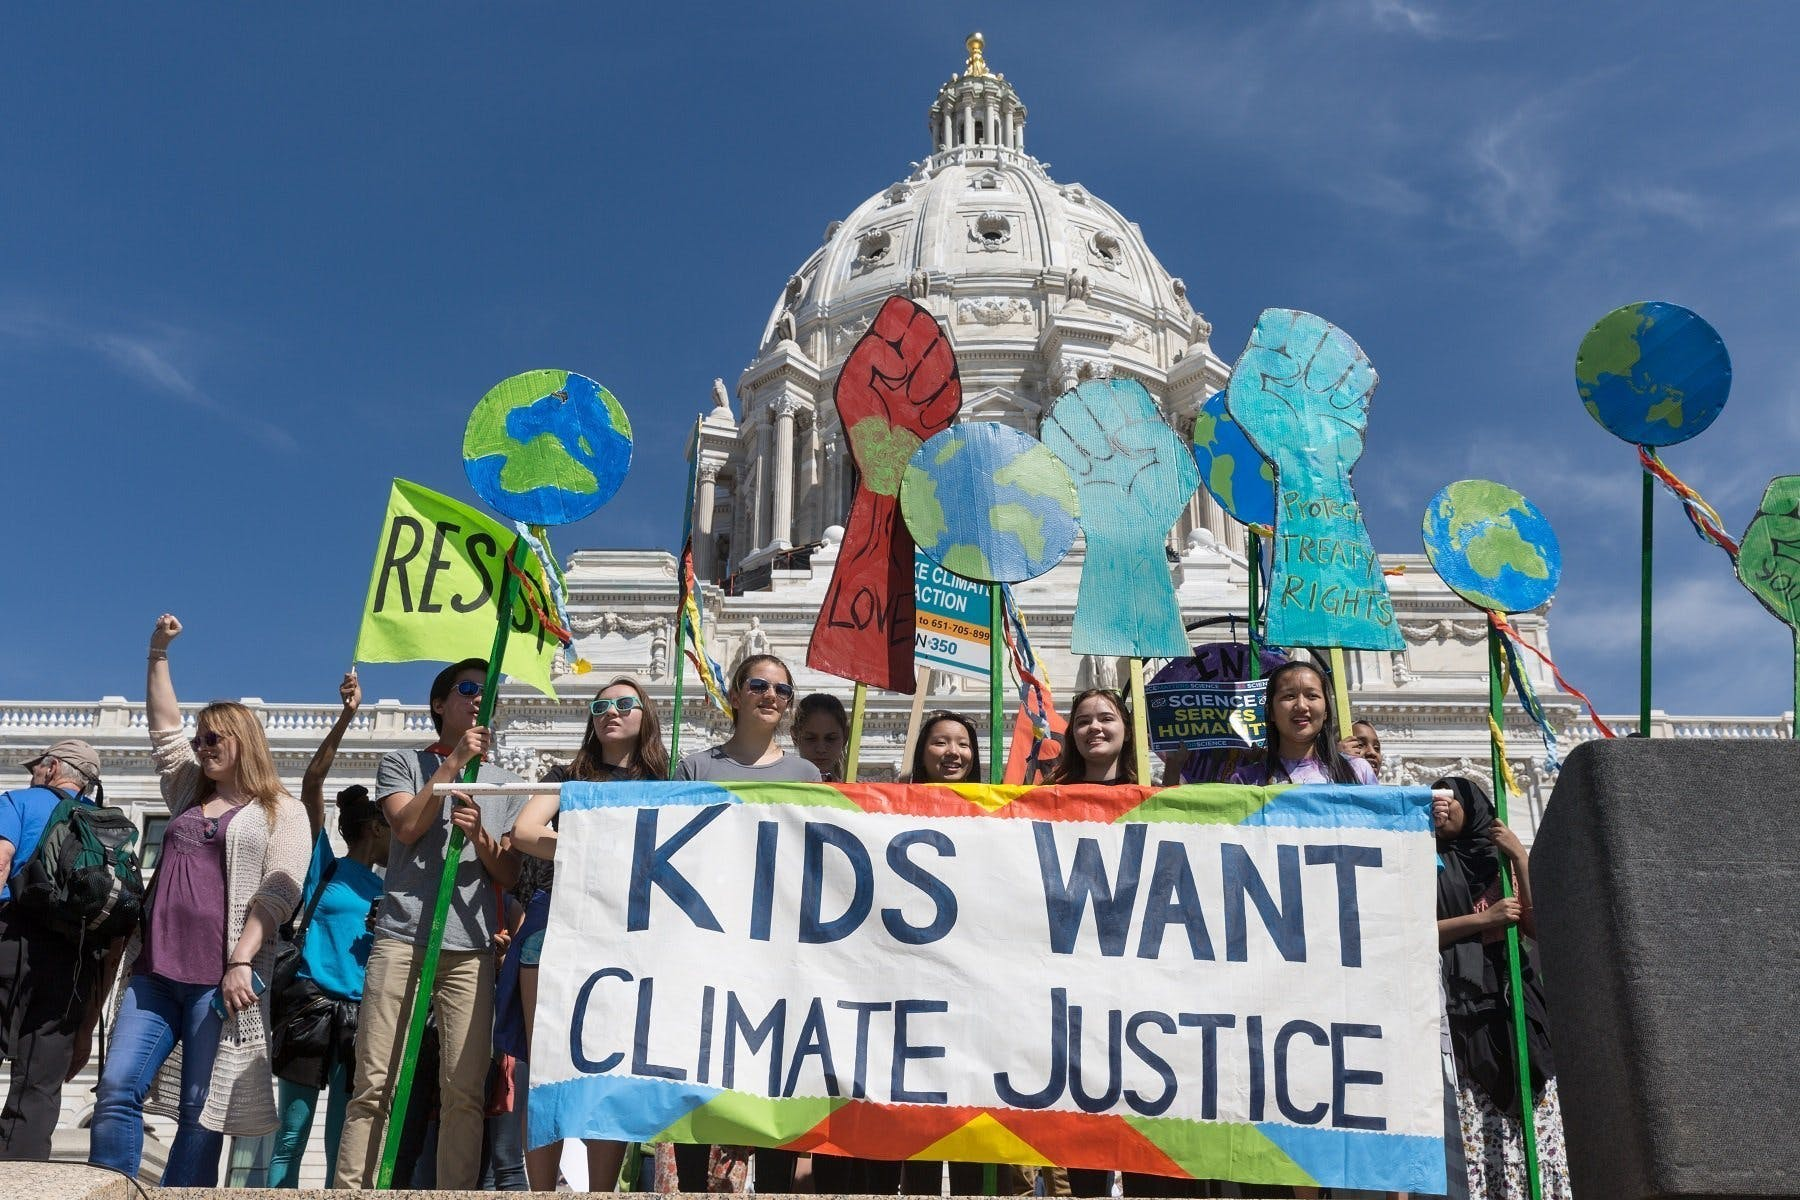 UN human rights experts applaud children fighting climate change